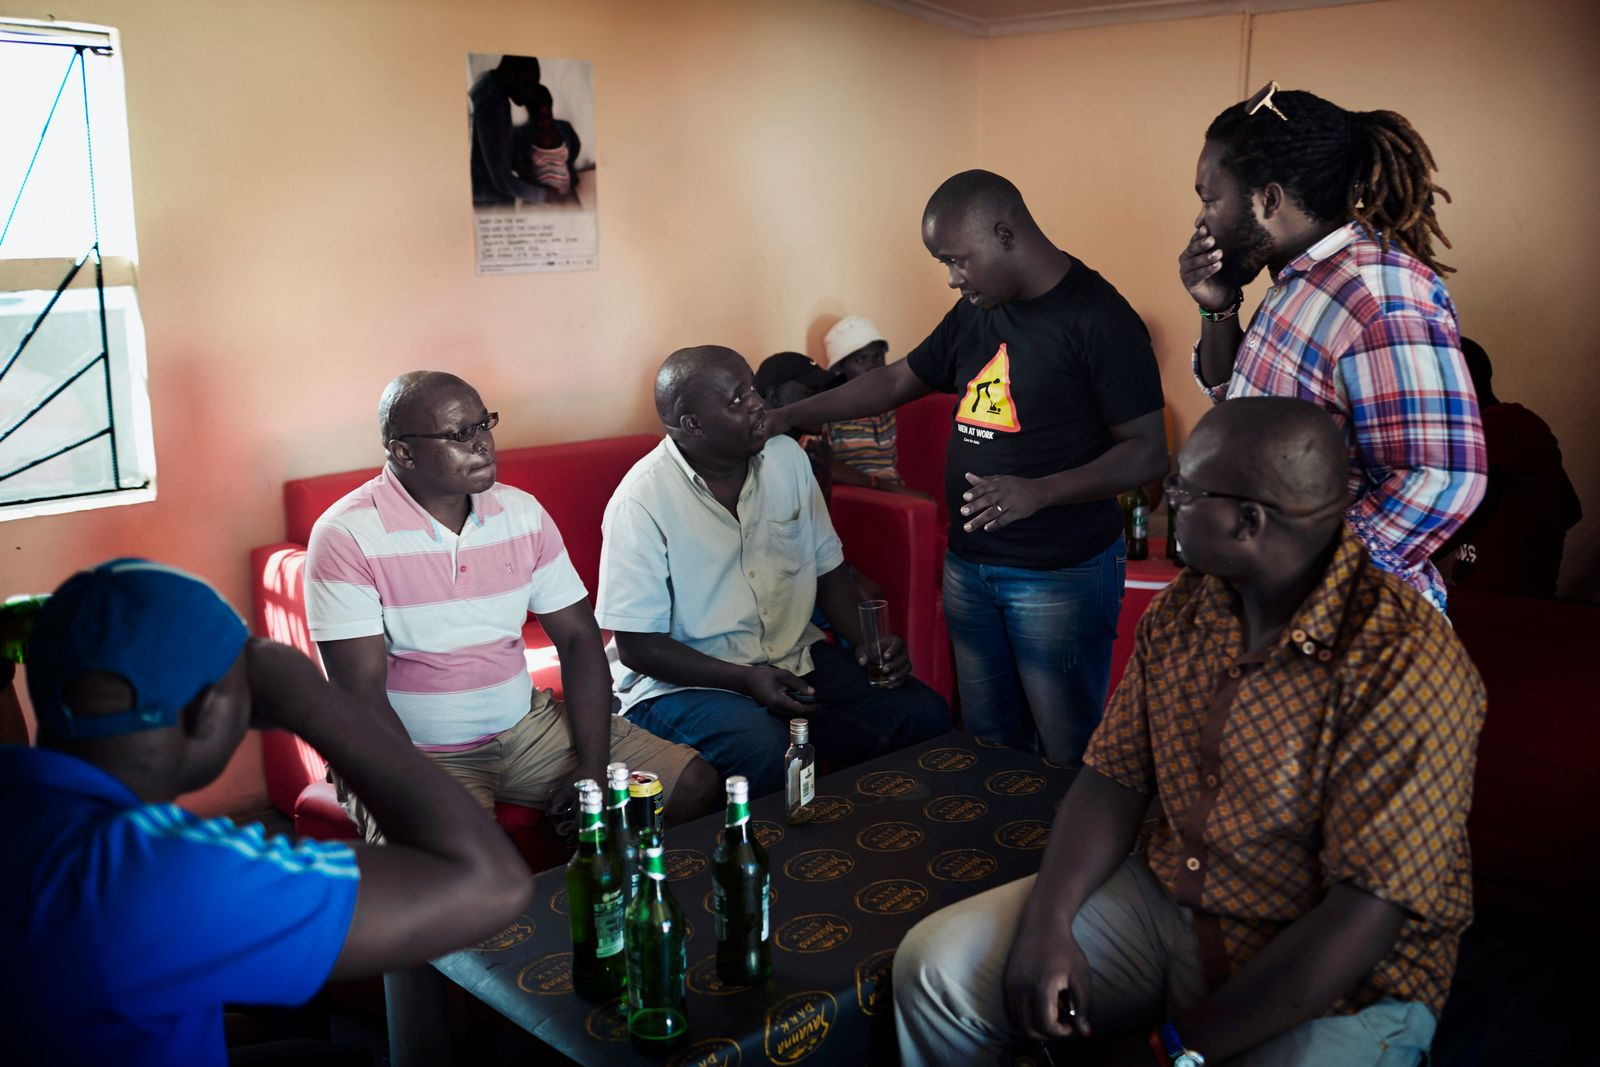 Social worker talks to men in a bar in Mfuleni, South Africa